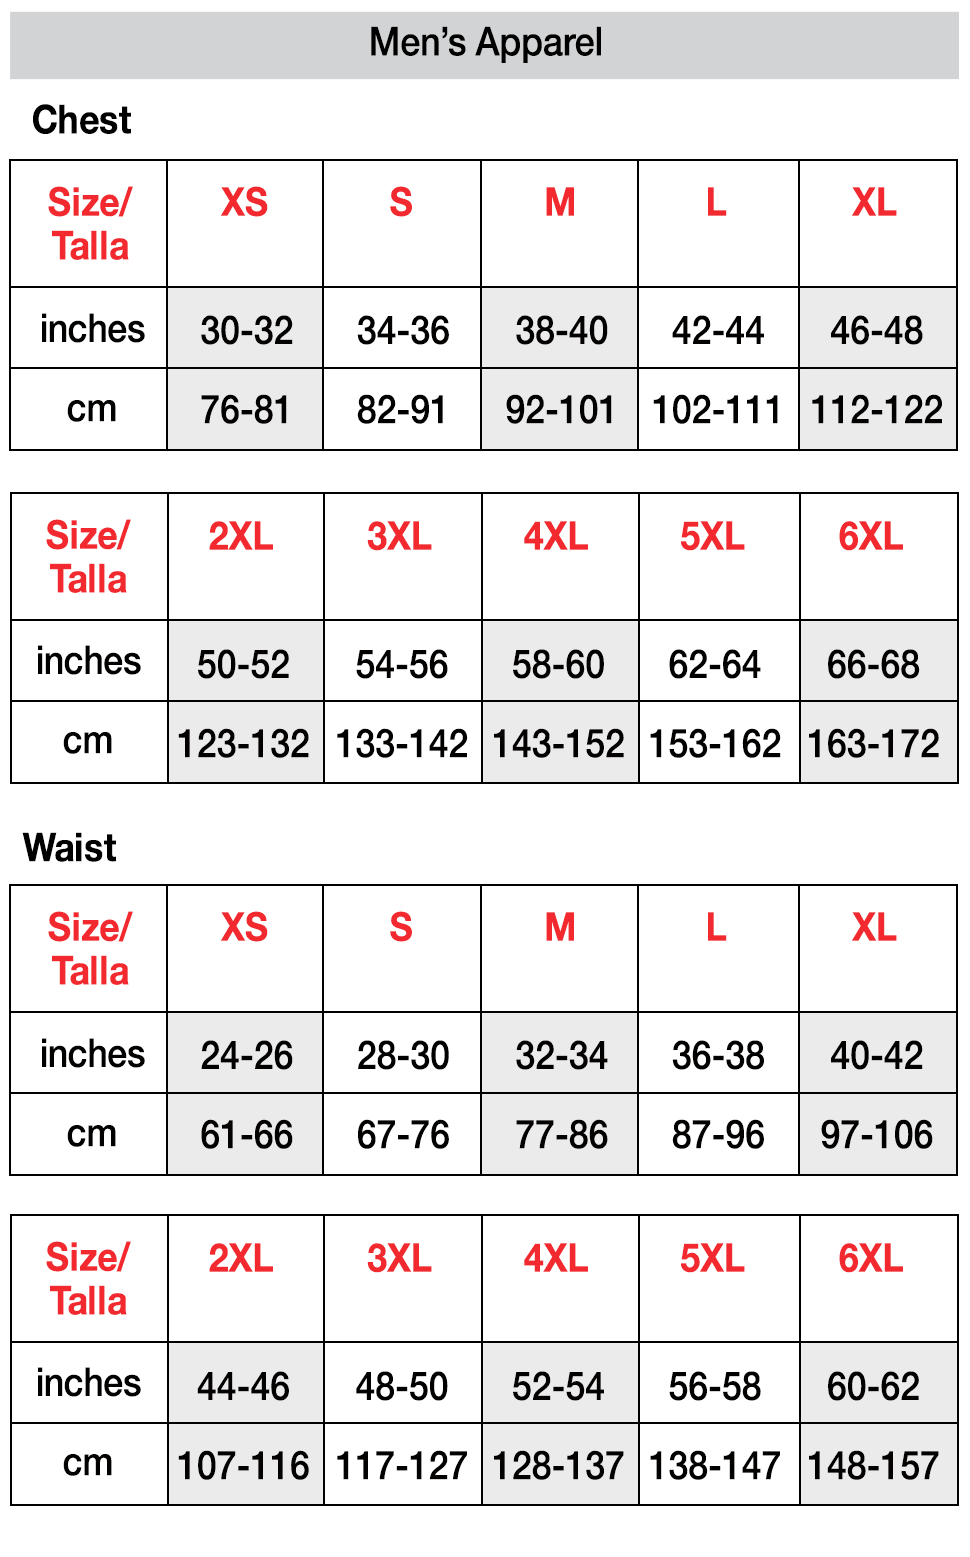 hanes-5586-size-chart.png